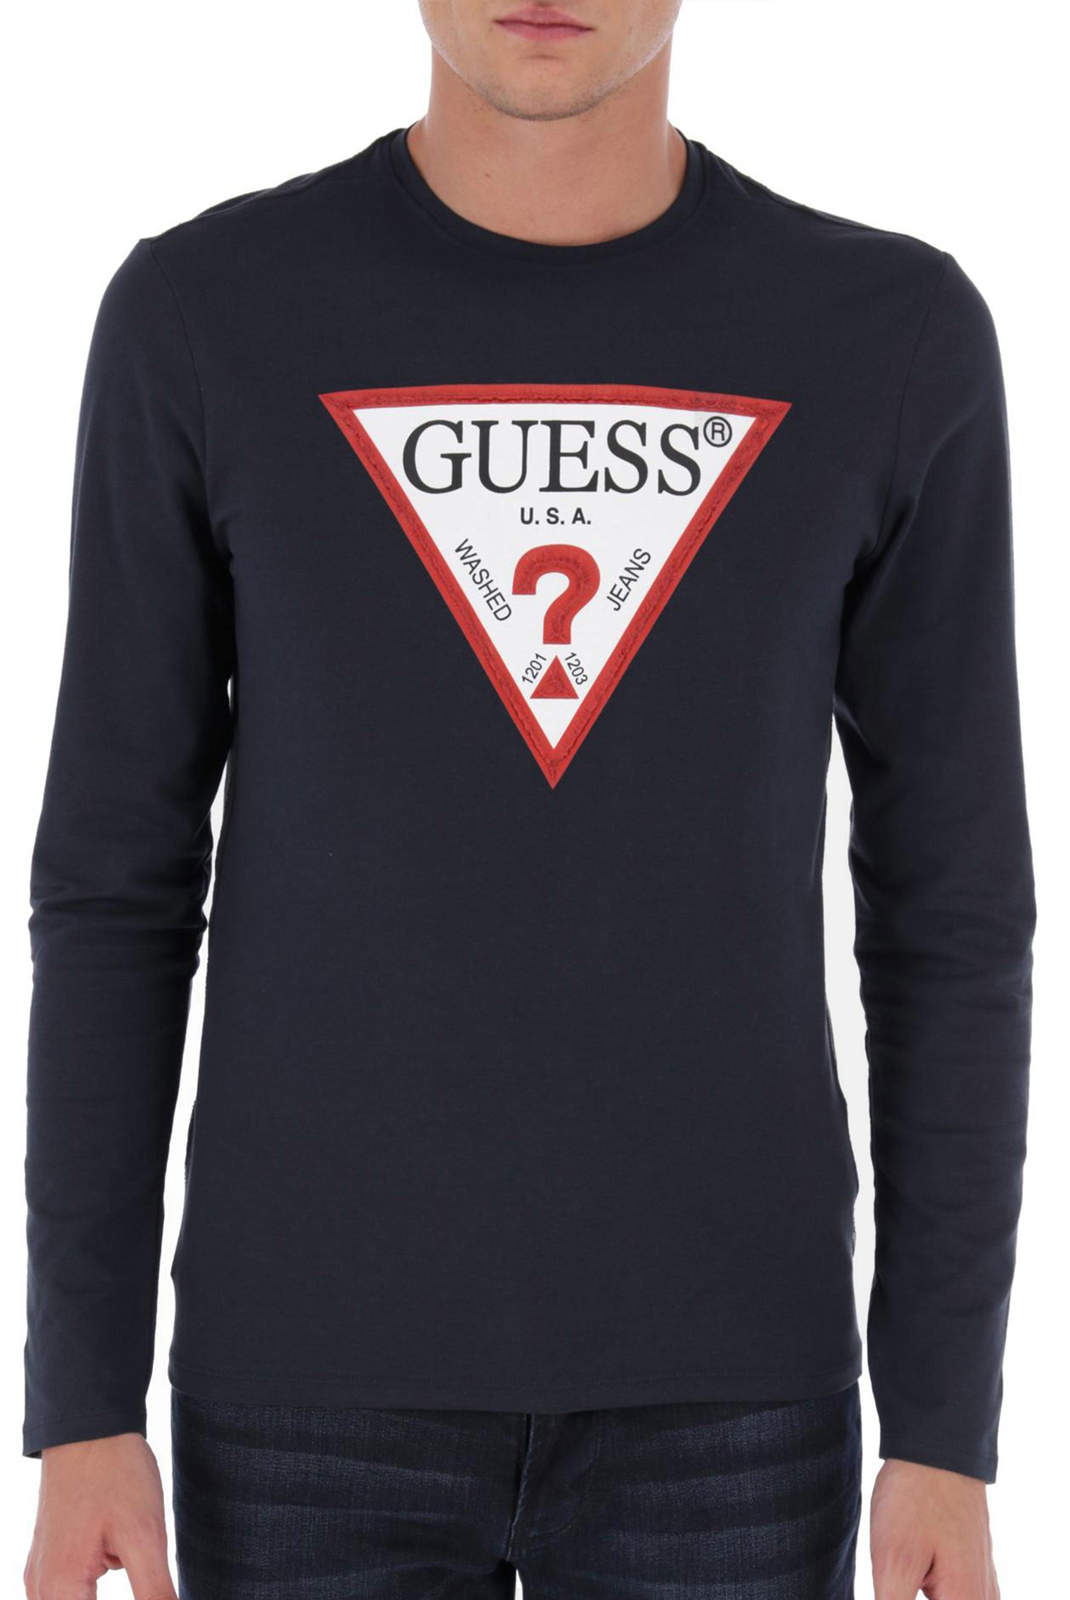 Tee-shirts  Guess jeans M84I17 J1300 G720 BLUE NAVY